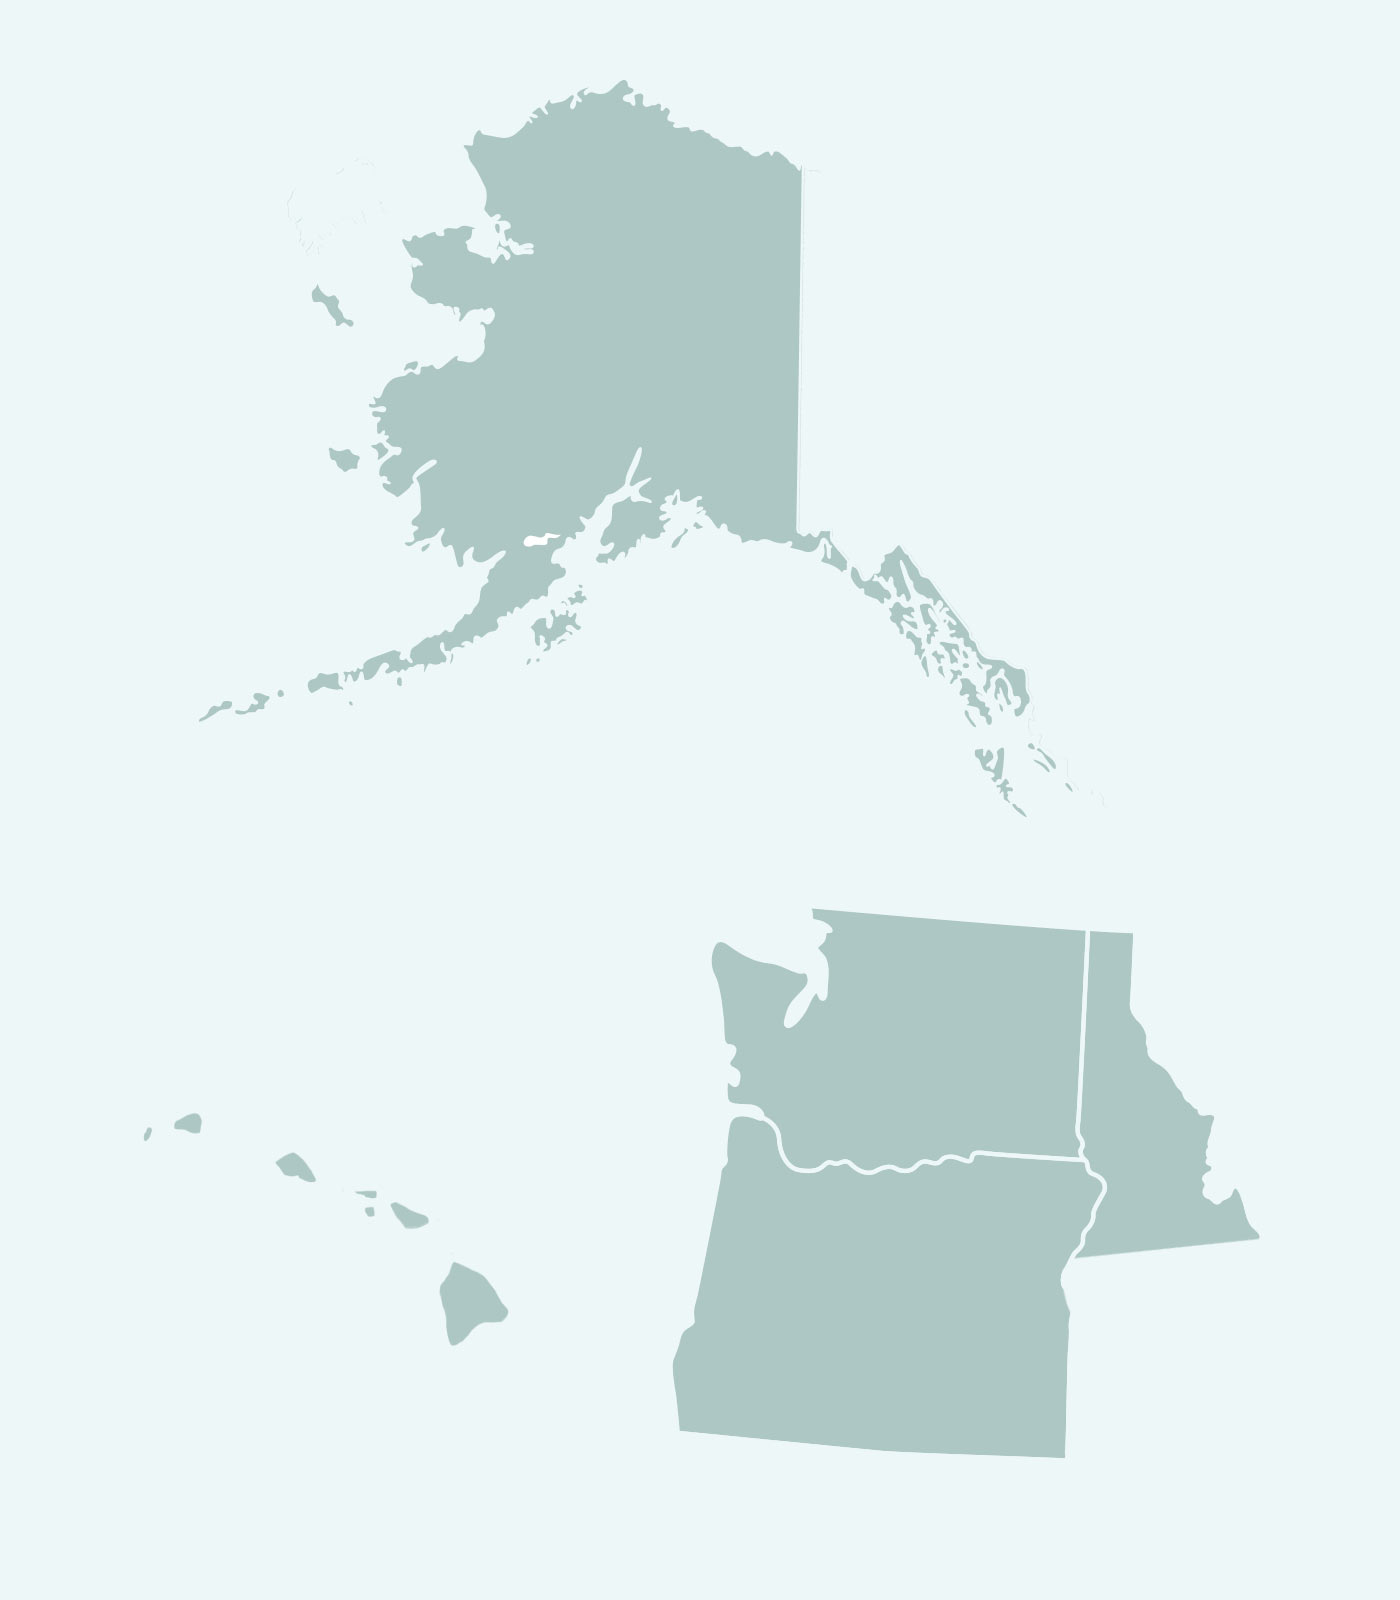 Sales Rep's Map of Alaska, Hawaii, Washington, Oregon, North Idaho for Women's Clothing Line Keren Hart